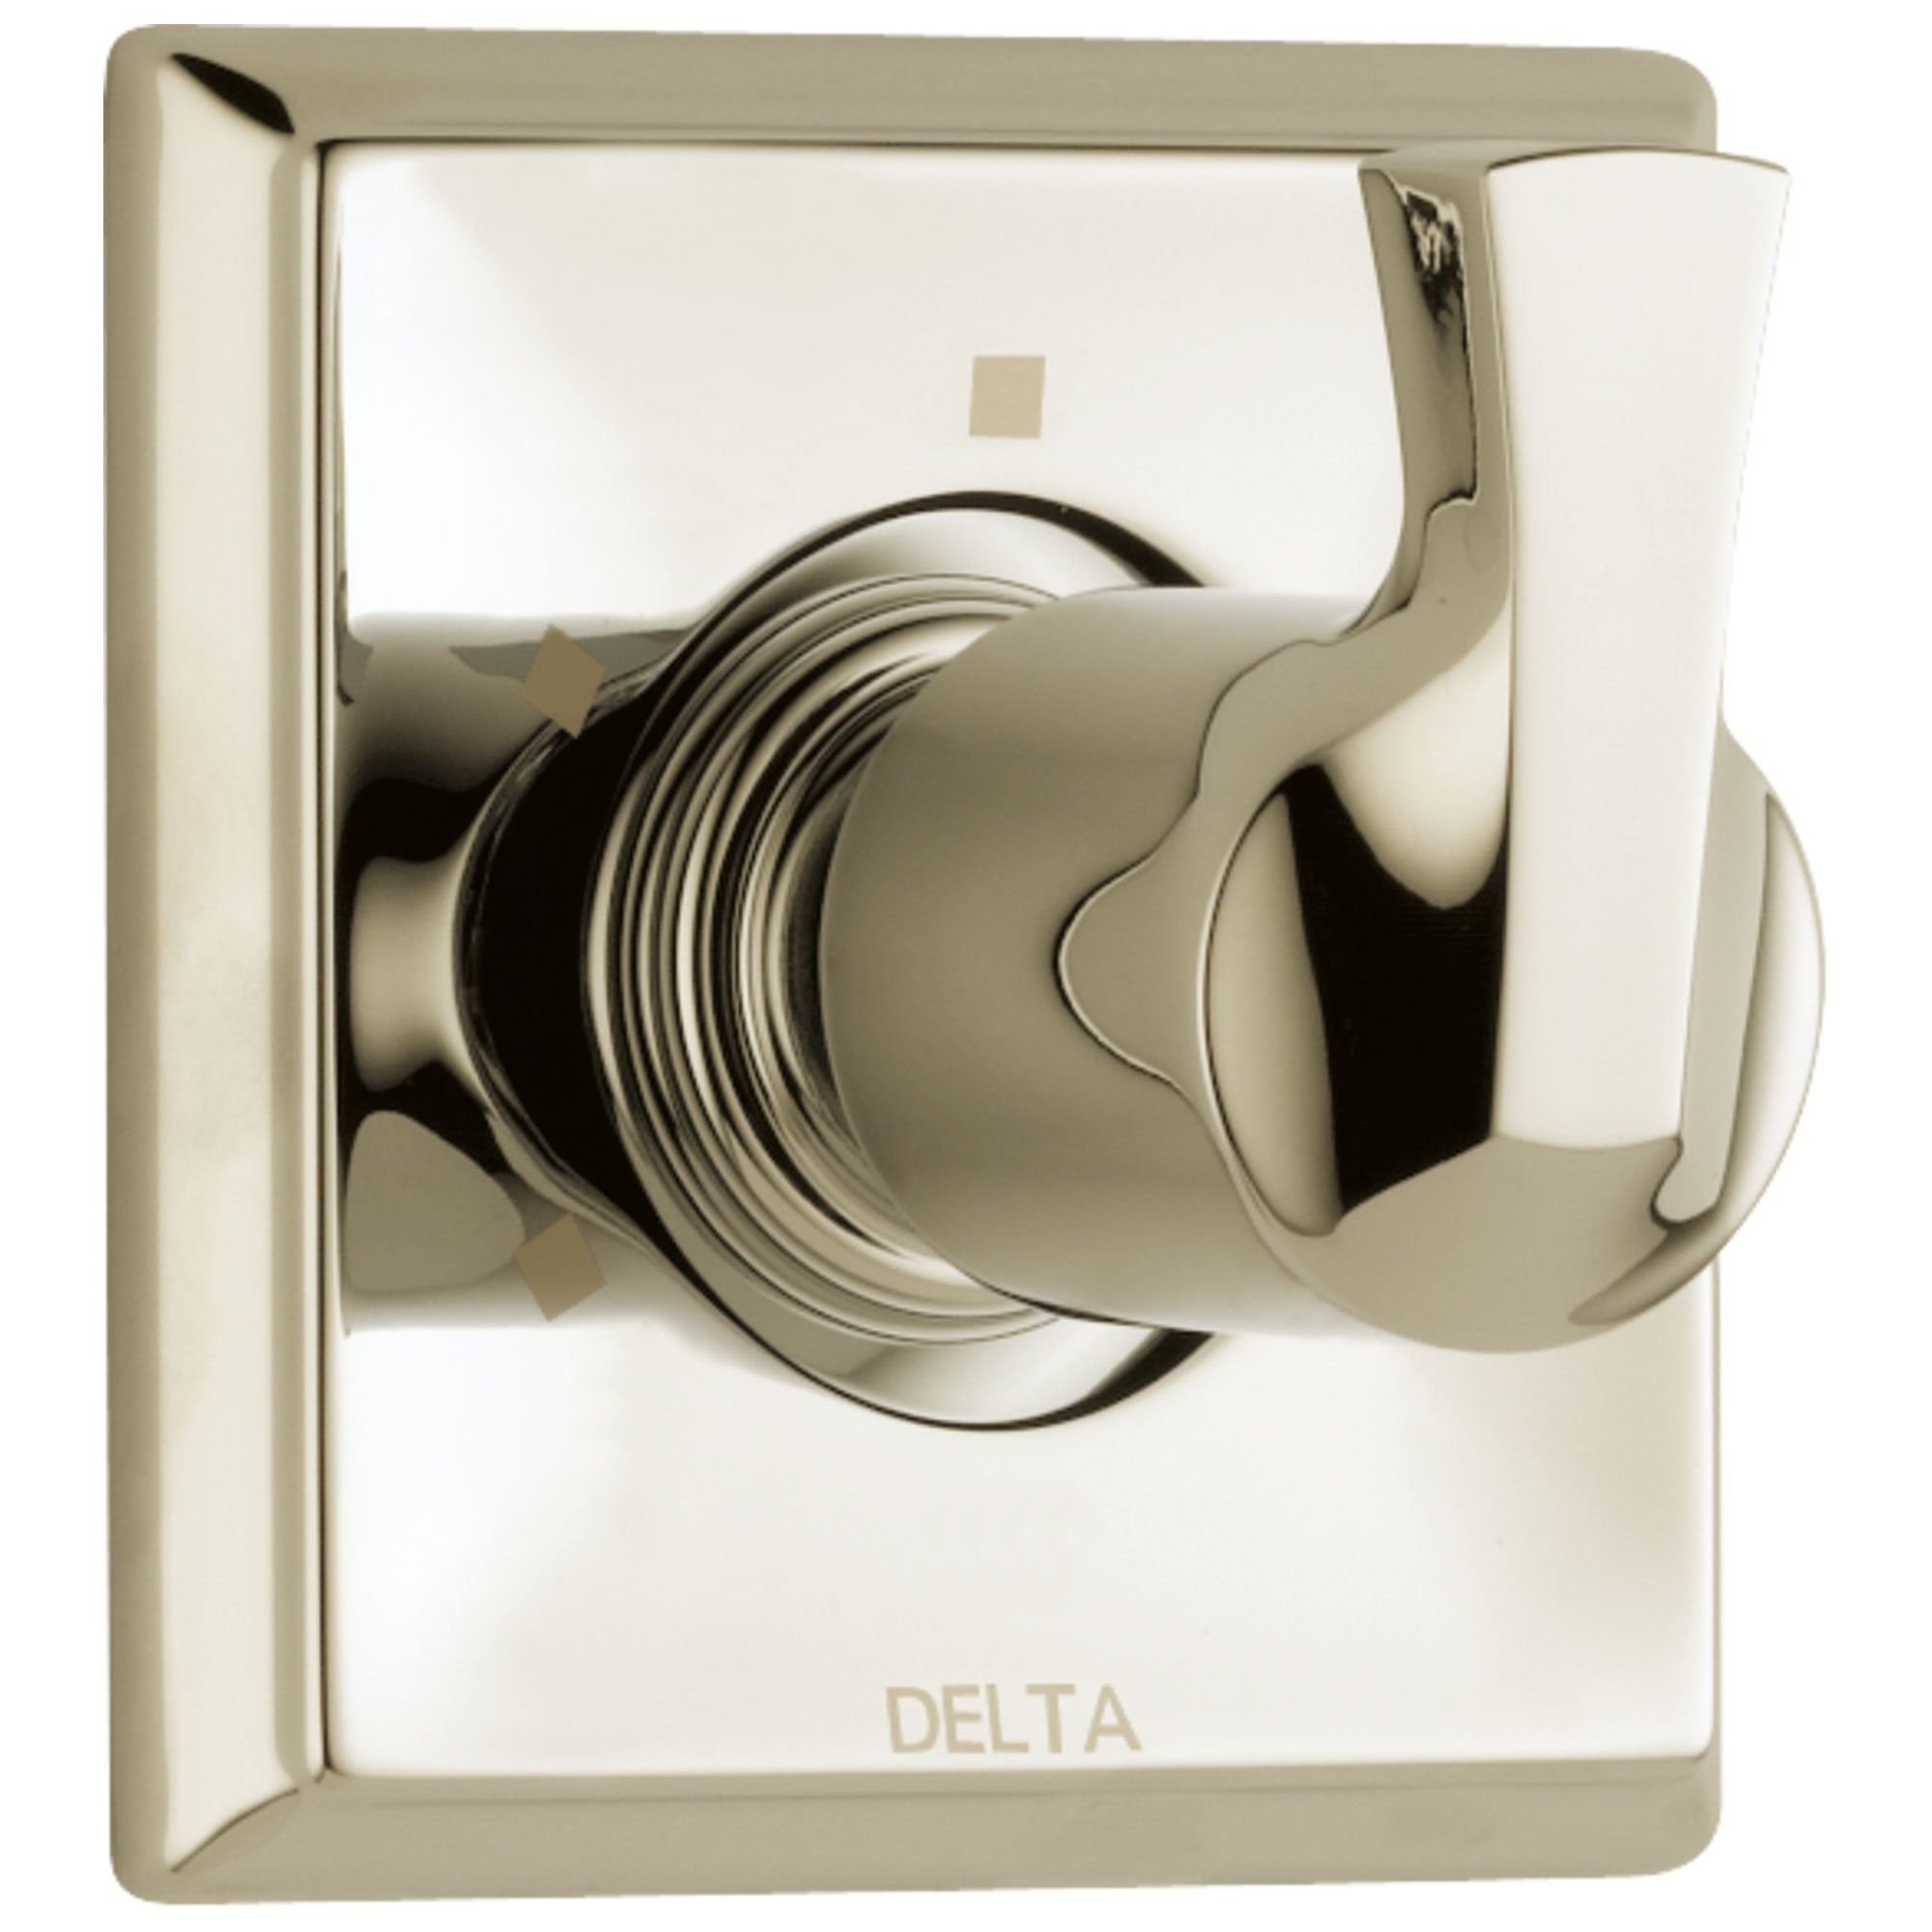 Delta Dryden Collection Polished Nickel 3-Setting 2-Port Contemporary Single Handle Shower System Diverter Includes Rough-in Valve D2555V